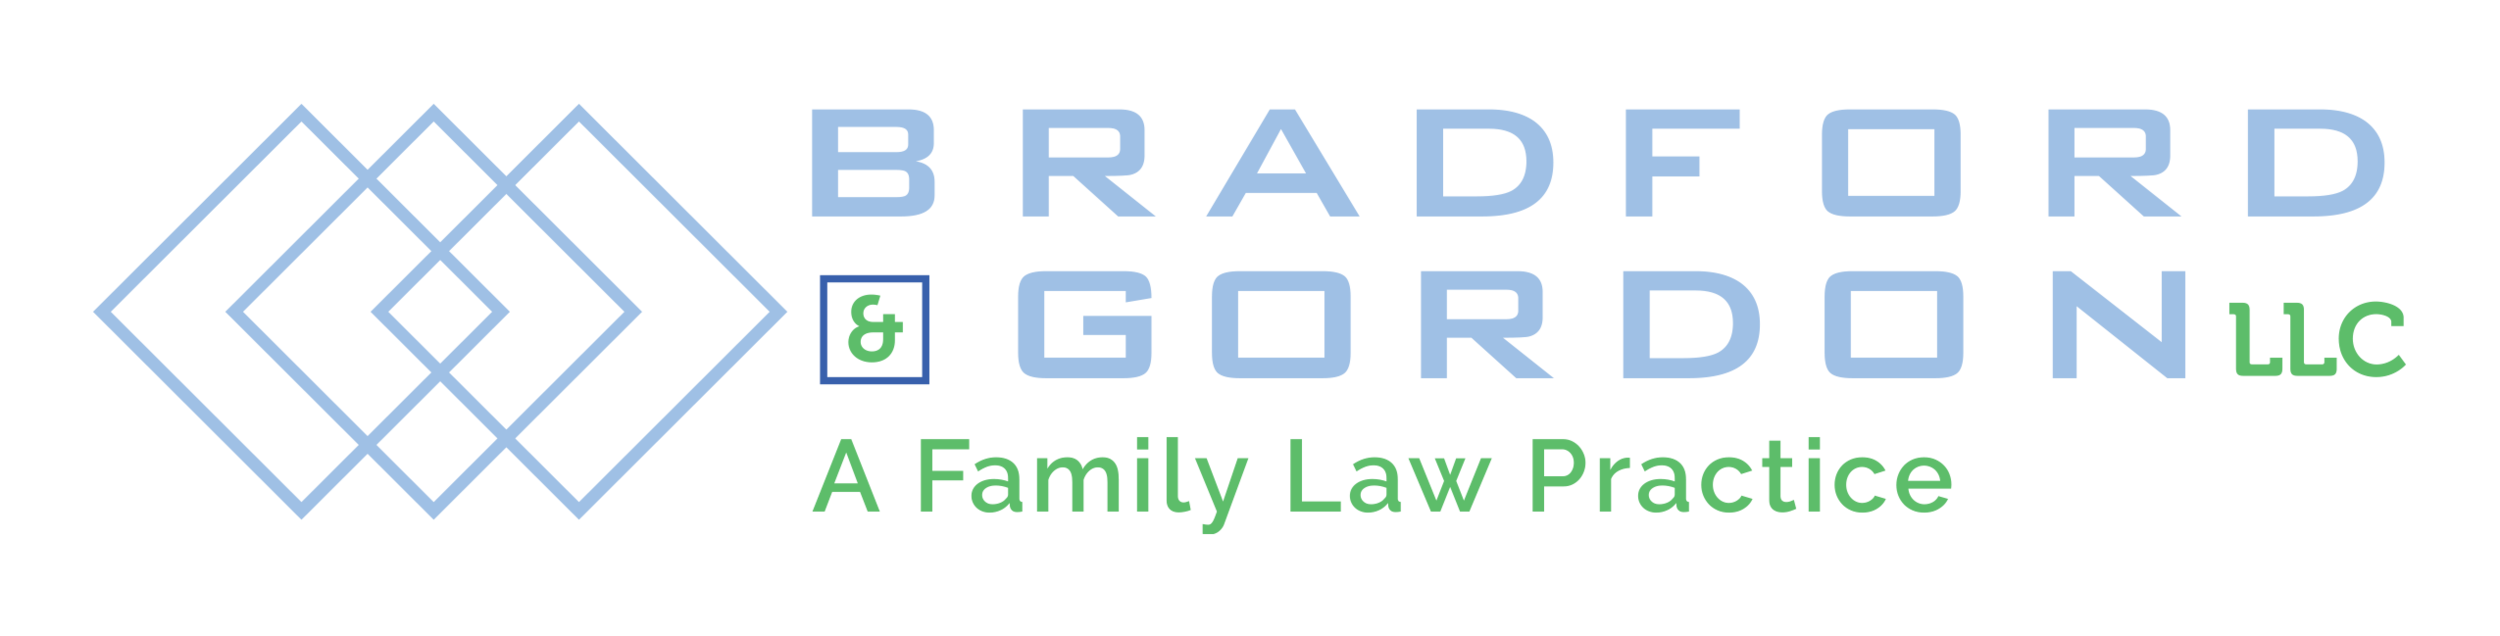 bradford-gordon-family-law.png